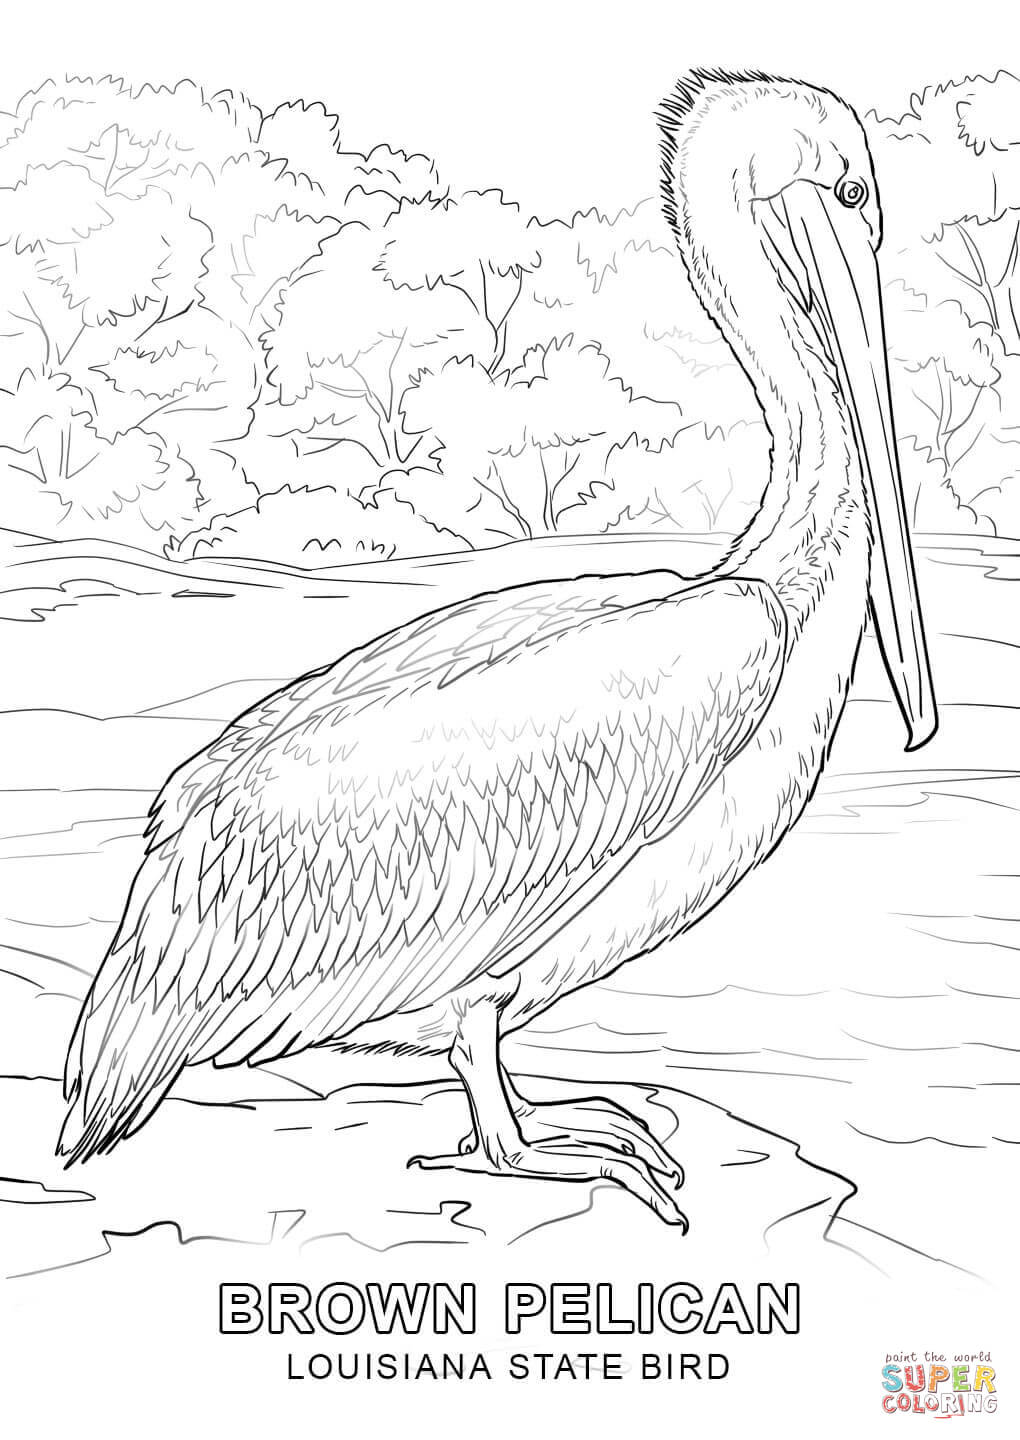 hawaiian goose coloring pages - photo#16